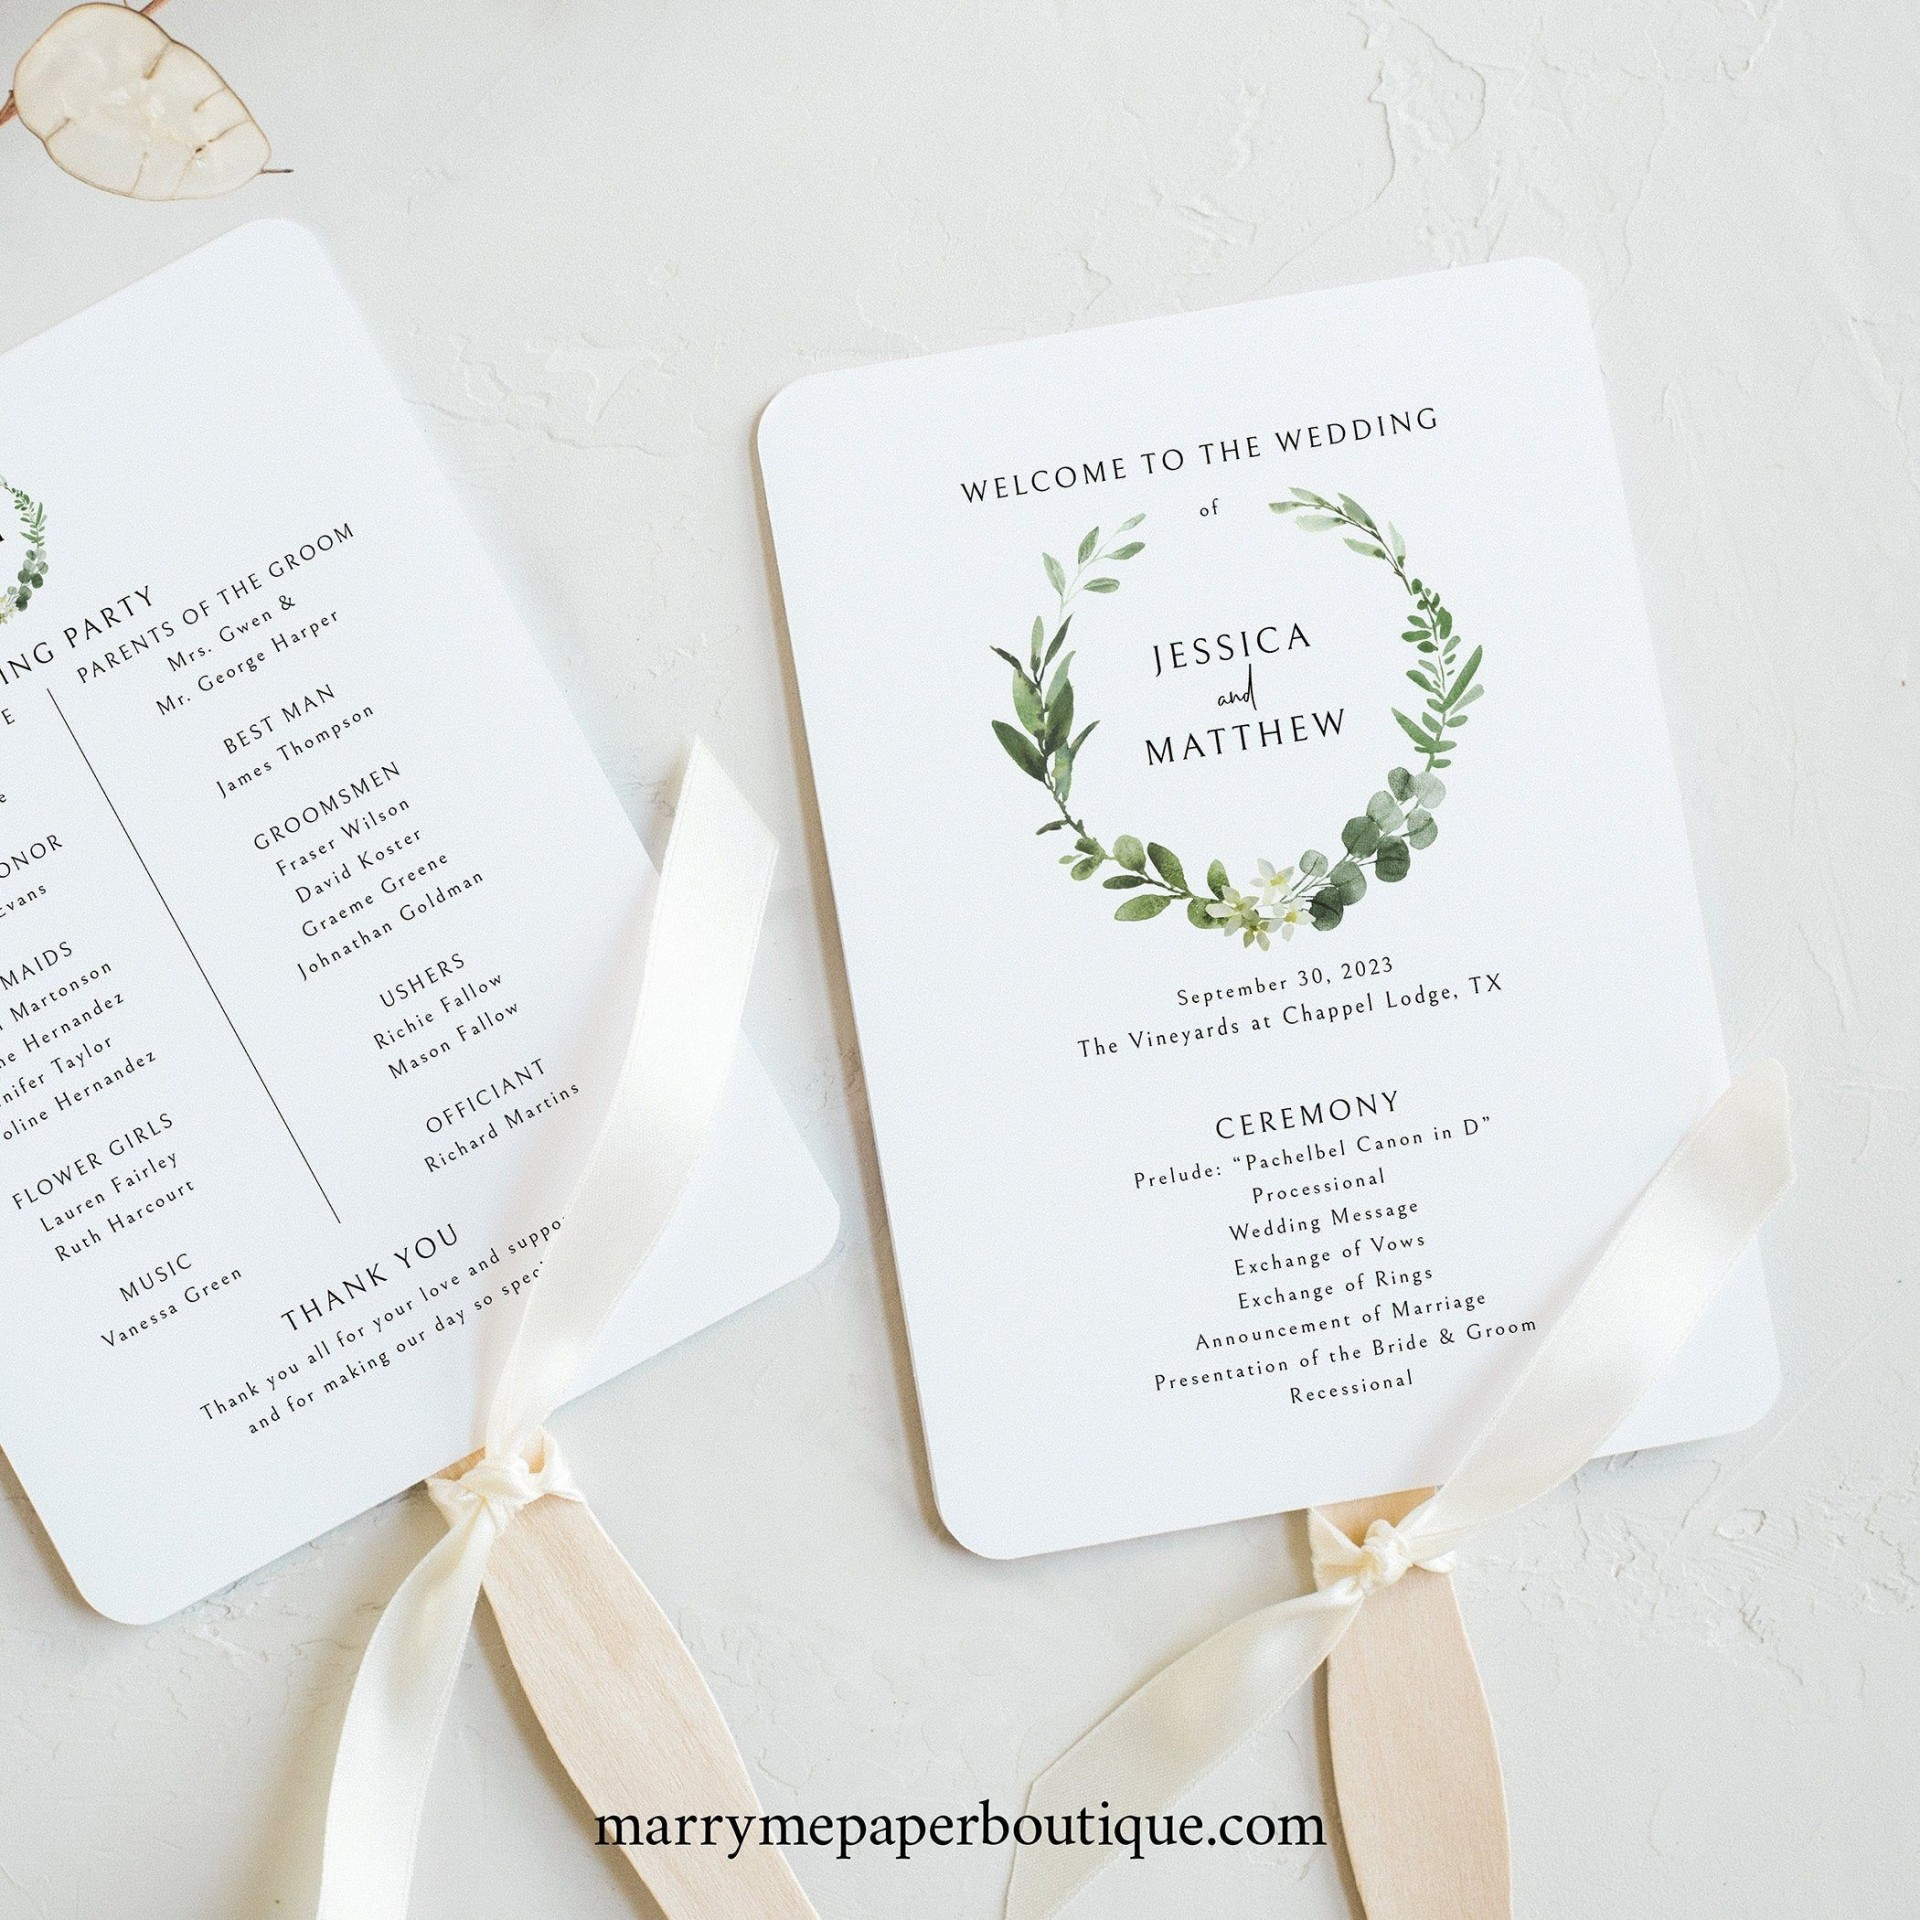 000 Surprising Wedding Program Fan Template High Resolution  Free Word Paddle Downloadable That Can Be Printed1920